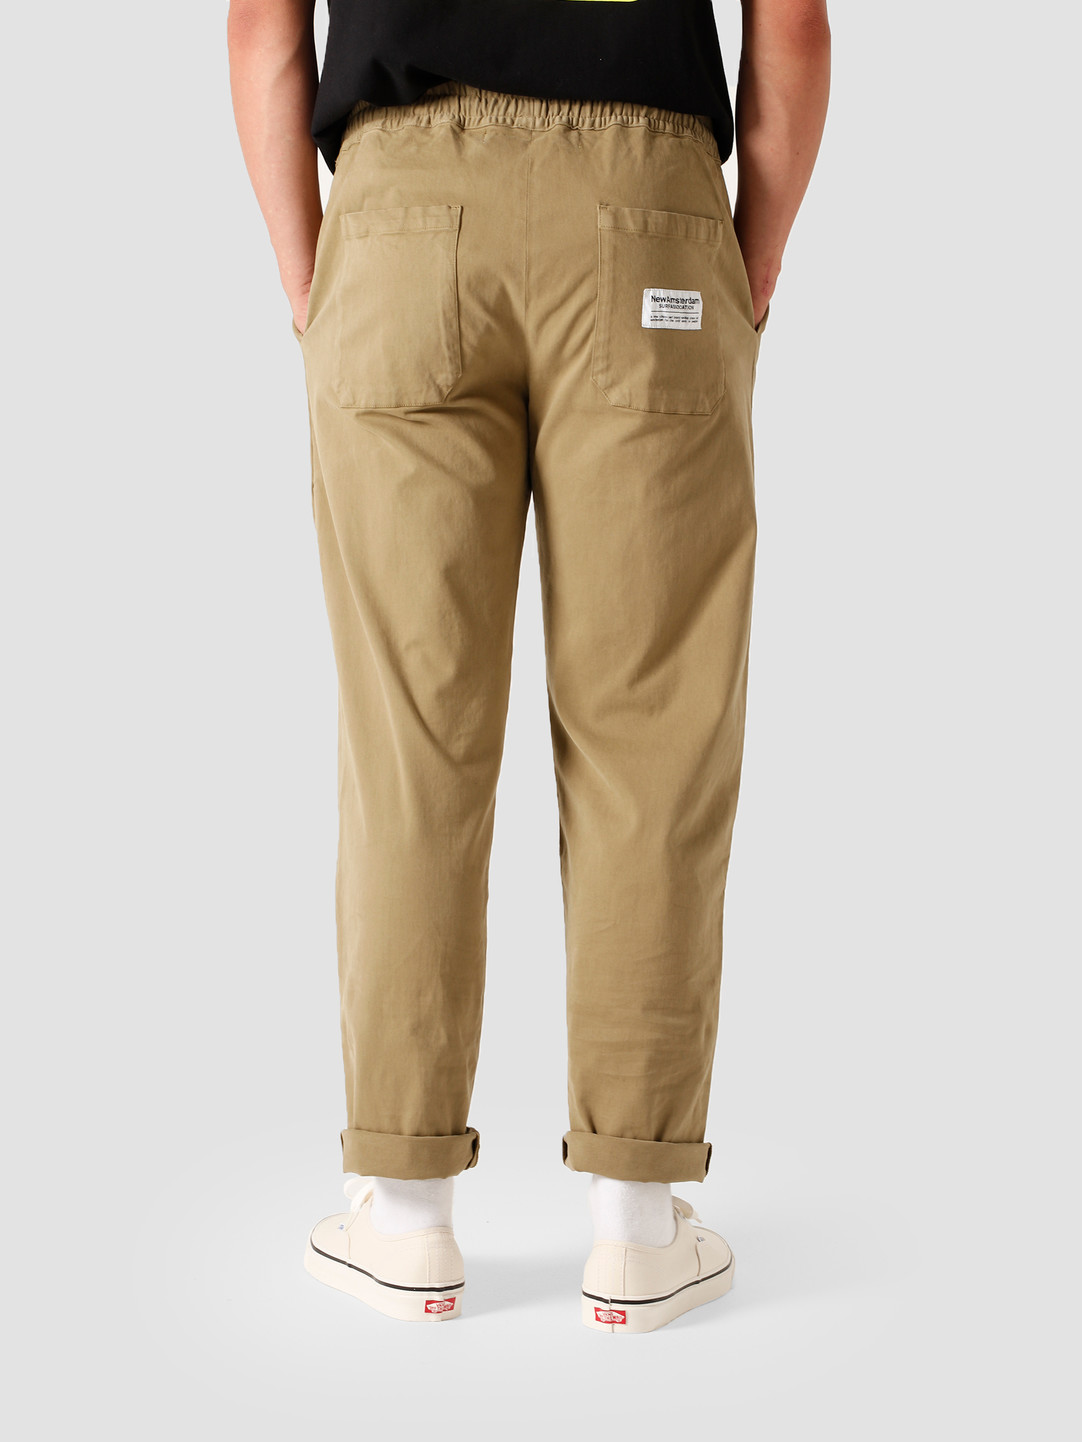 New Amsterdam Surf association New Amsterdam Surf association Work Trouser Aloe 2020069